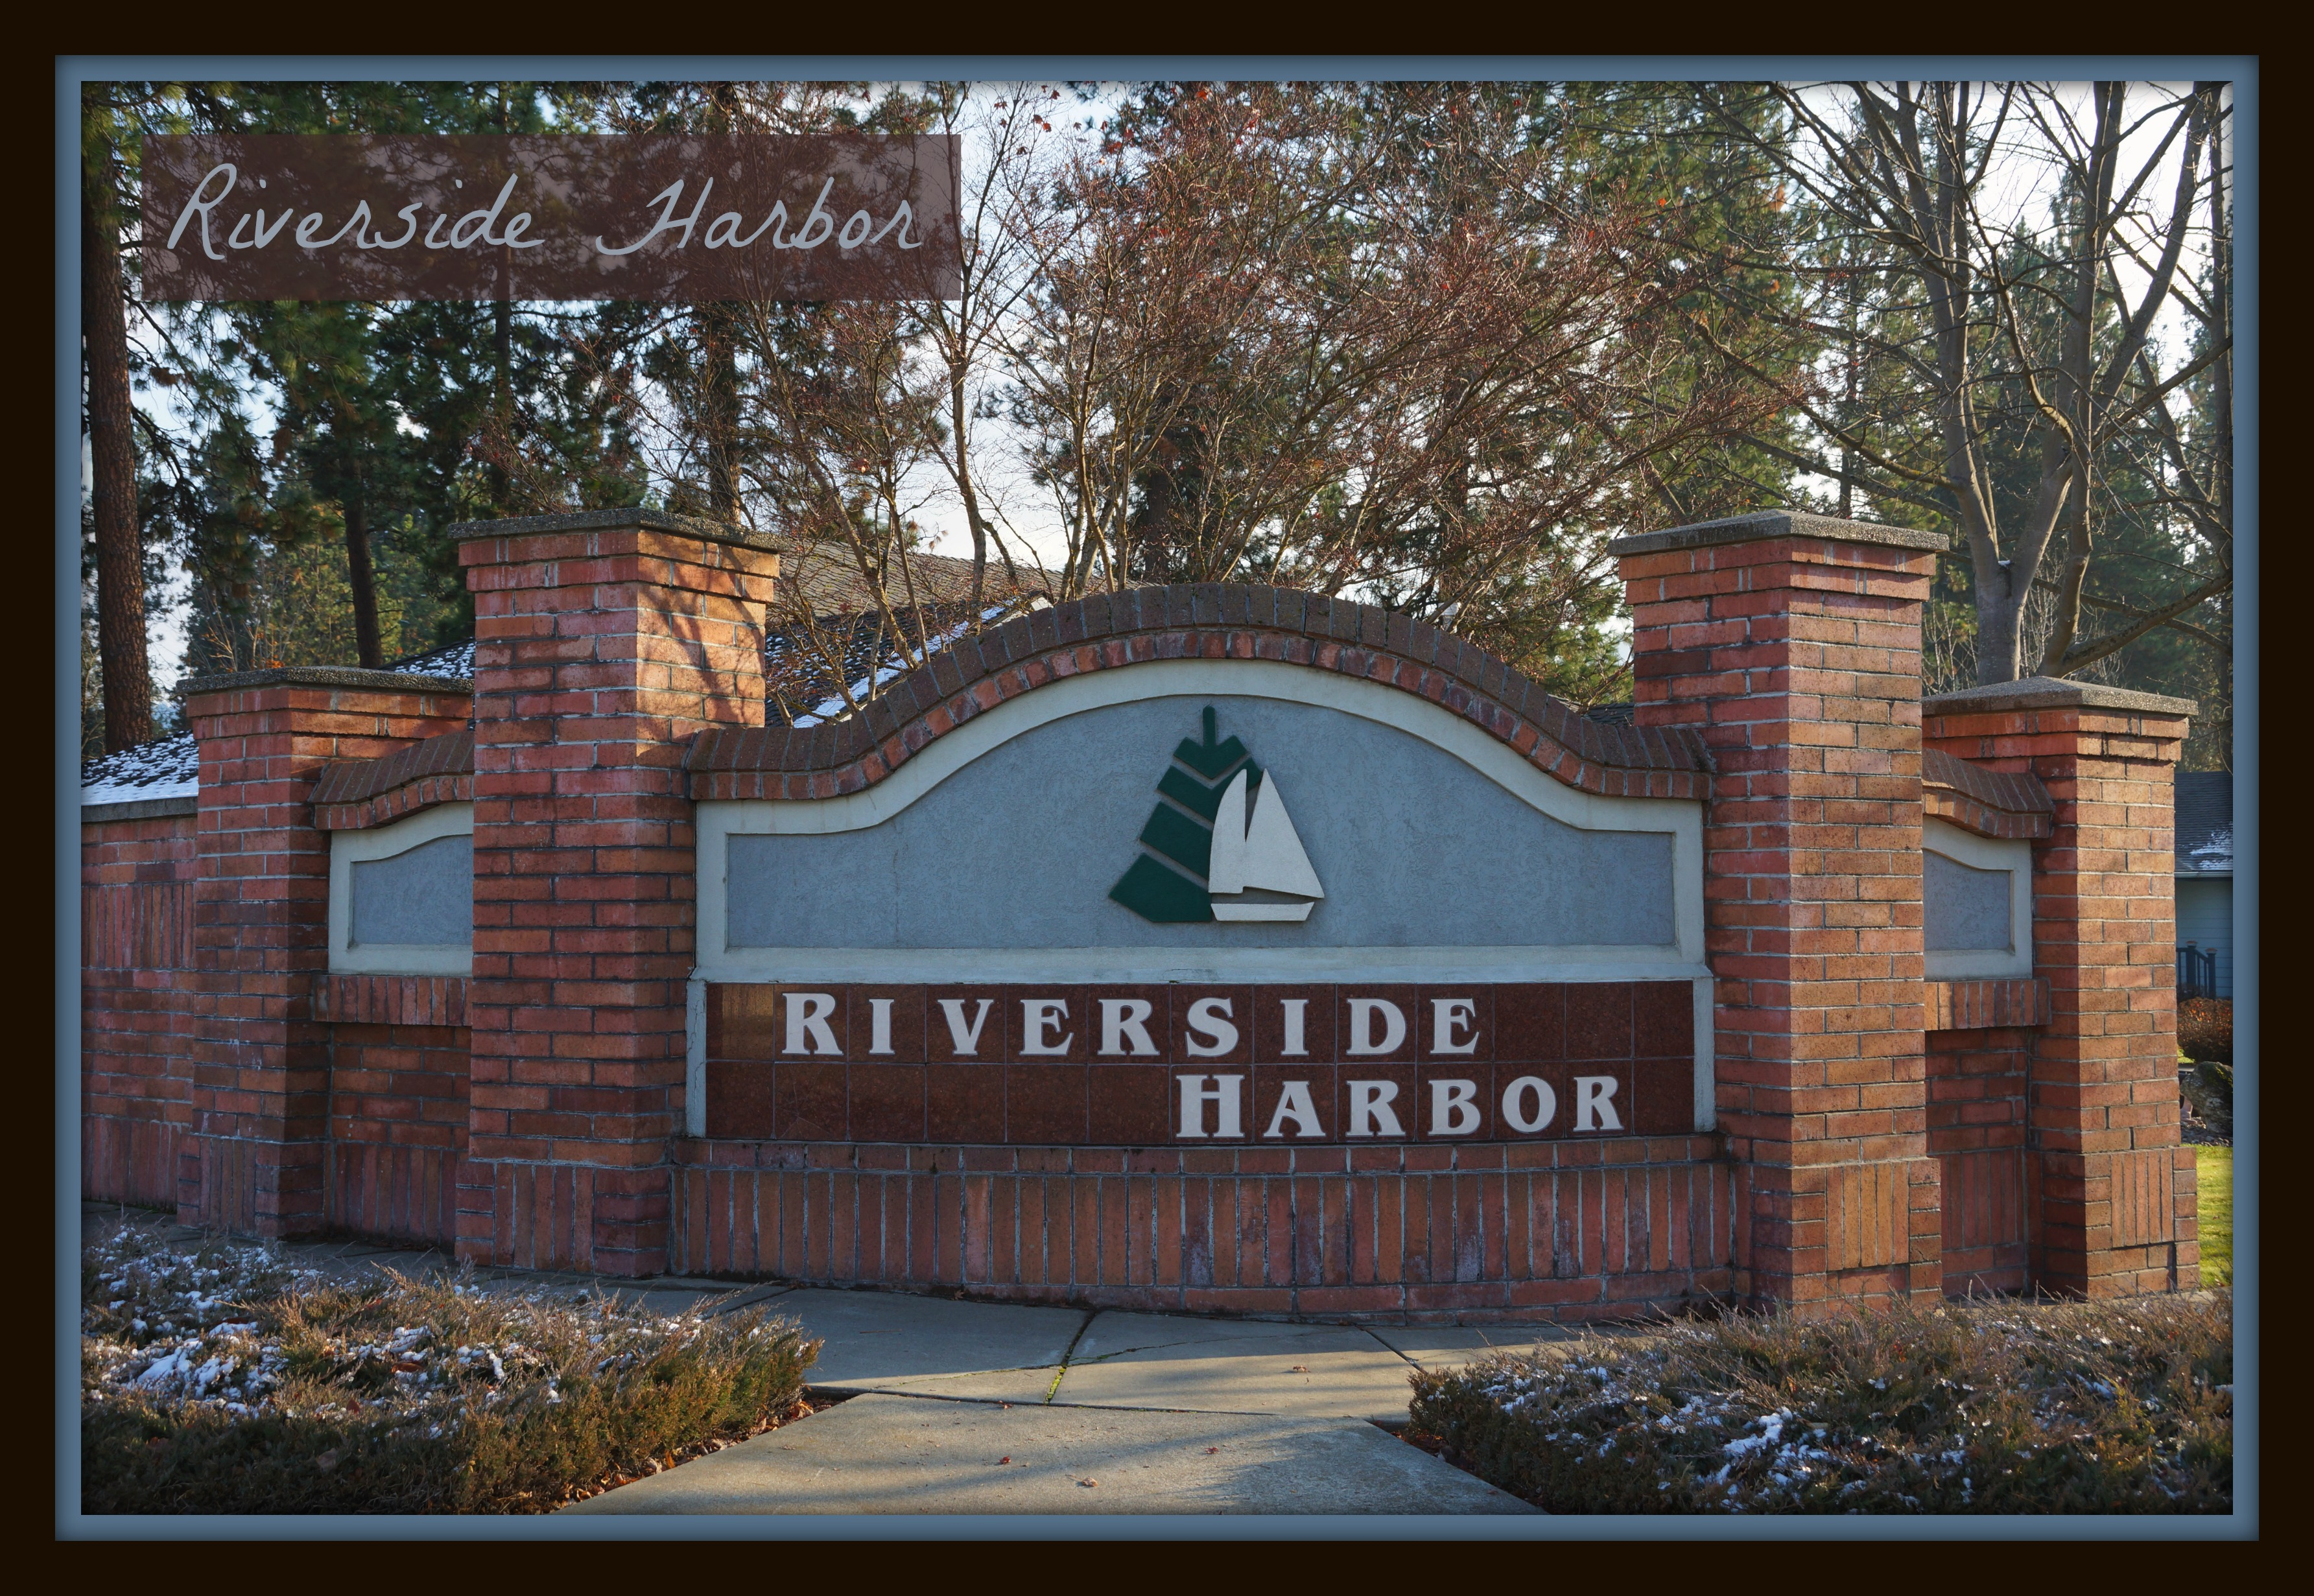 where is riverside harbor